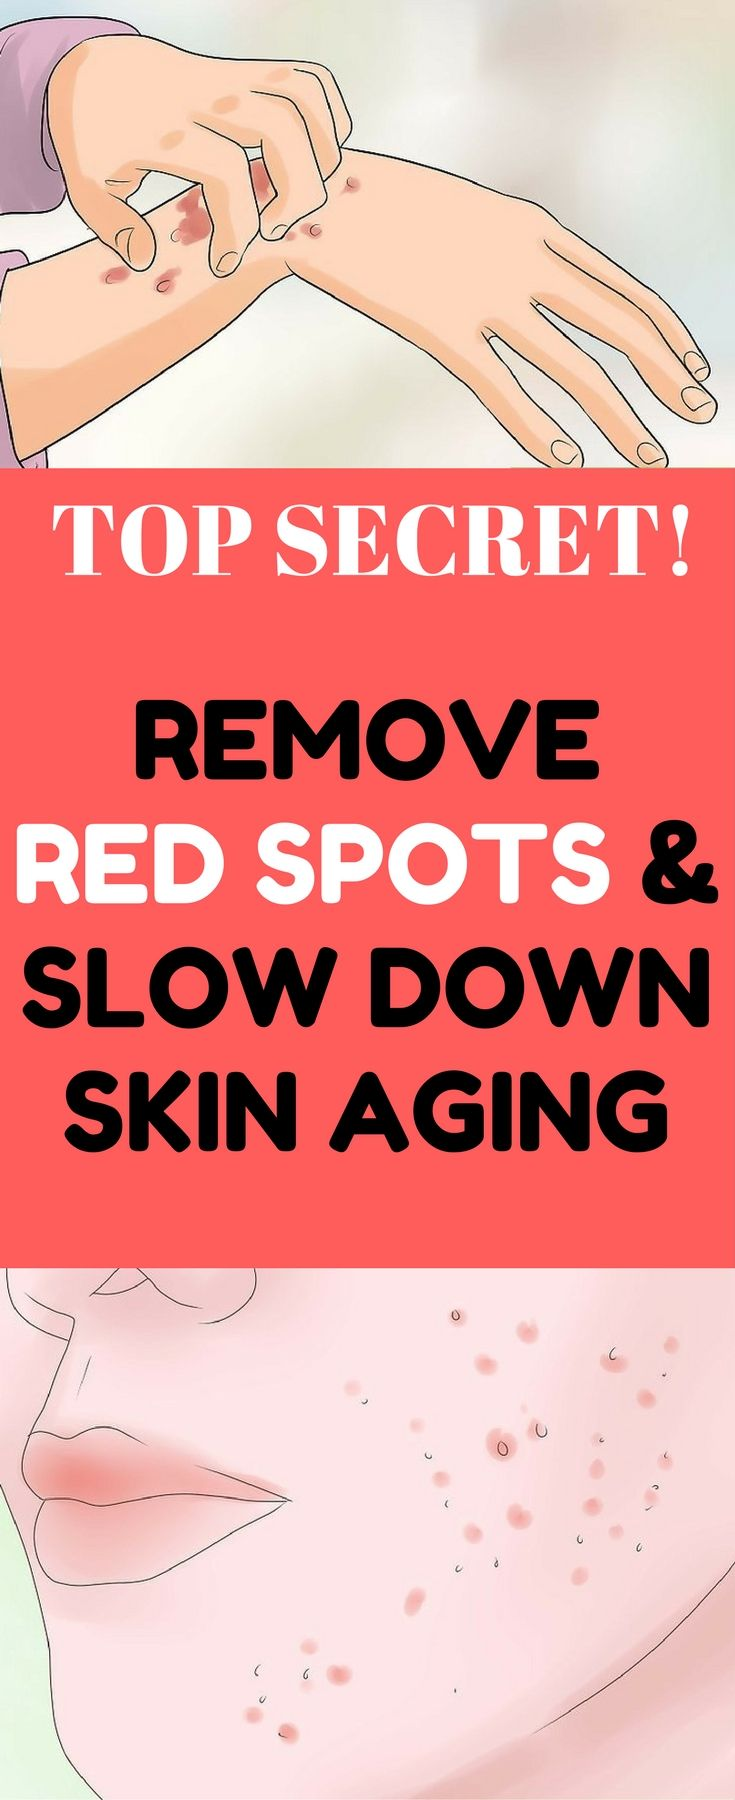 Skin red spots removal and anti aging secret now revealed.